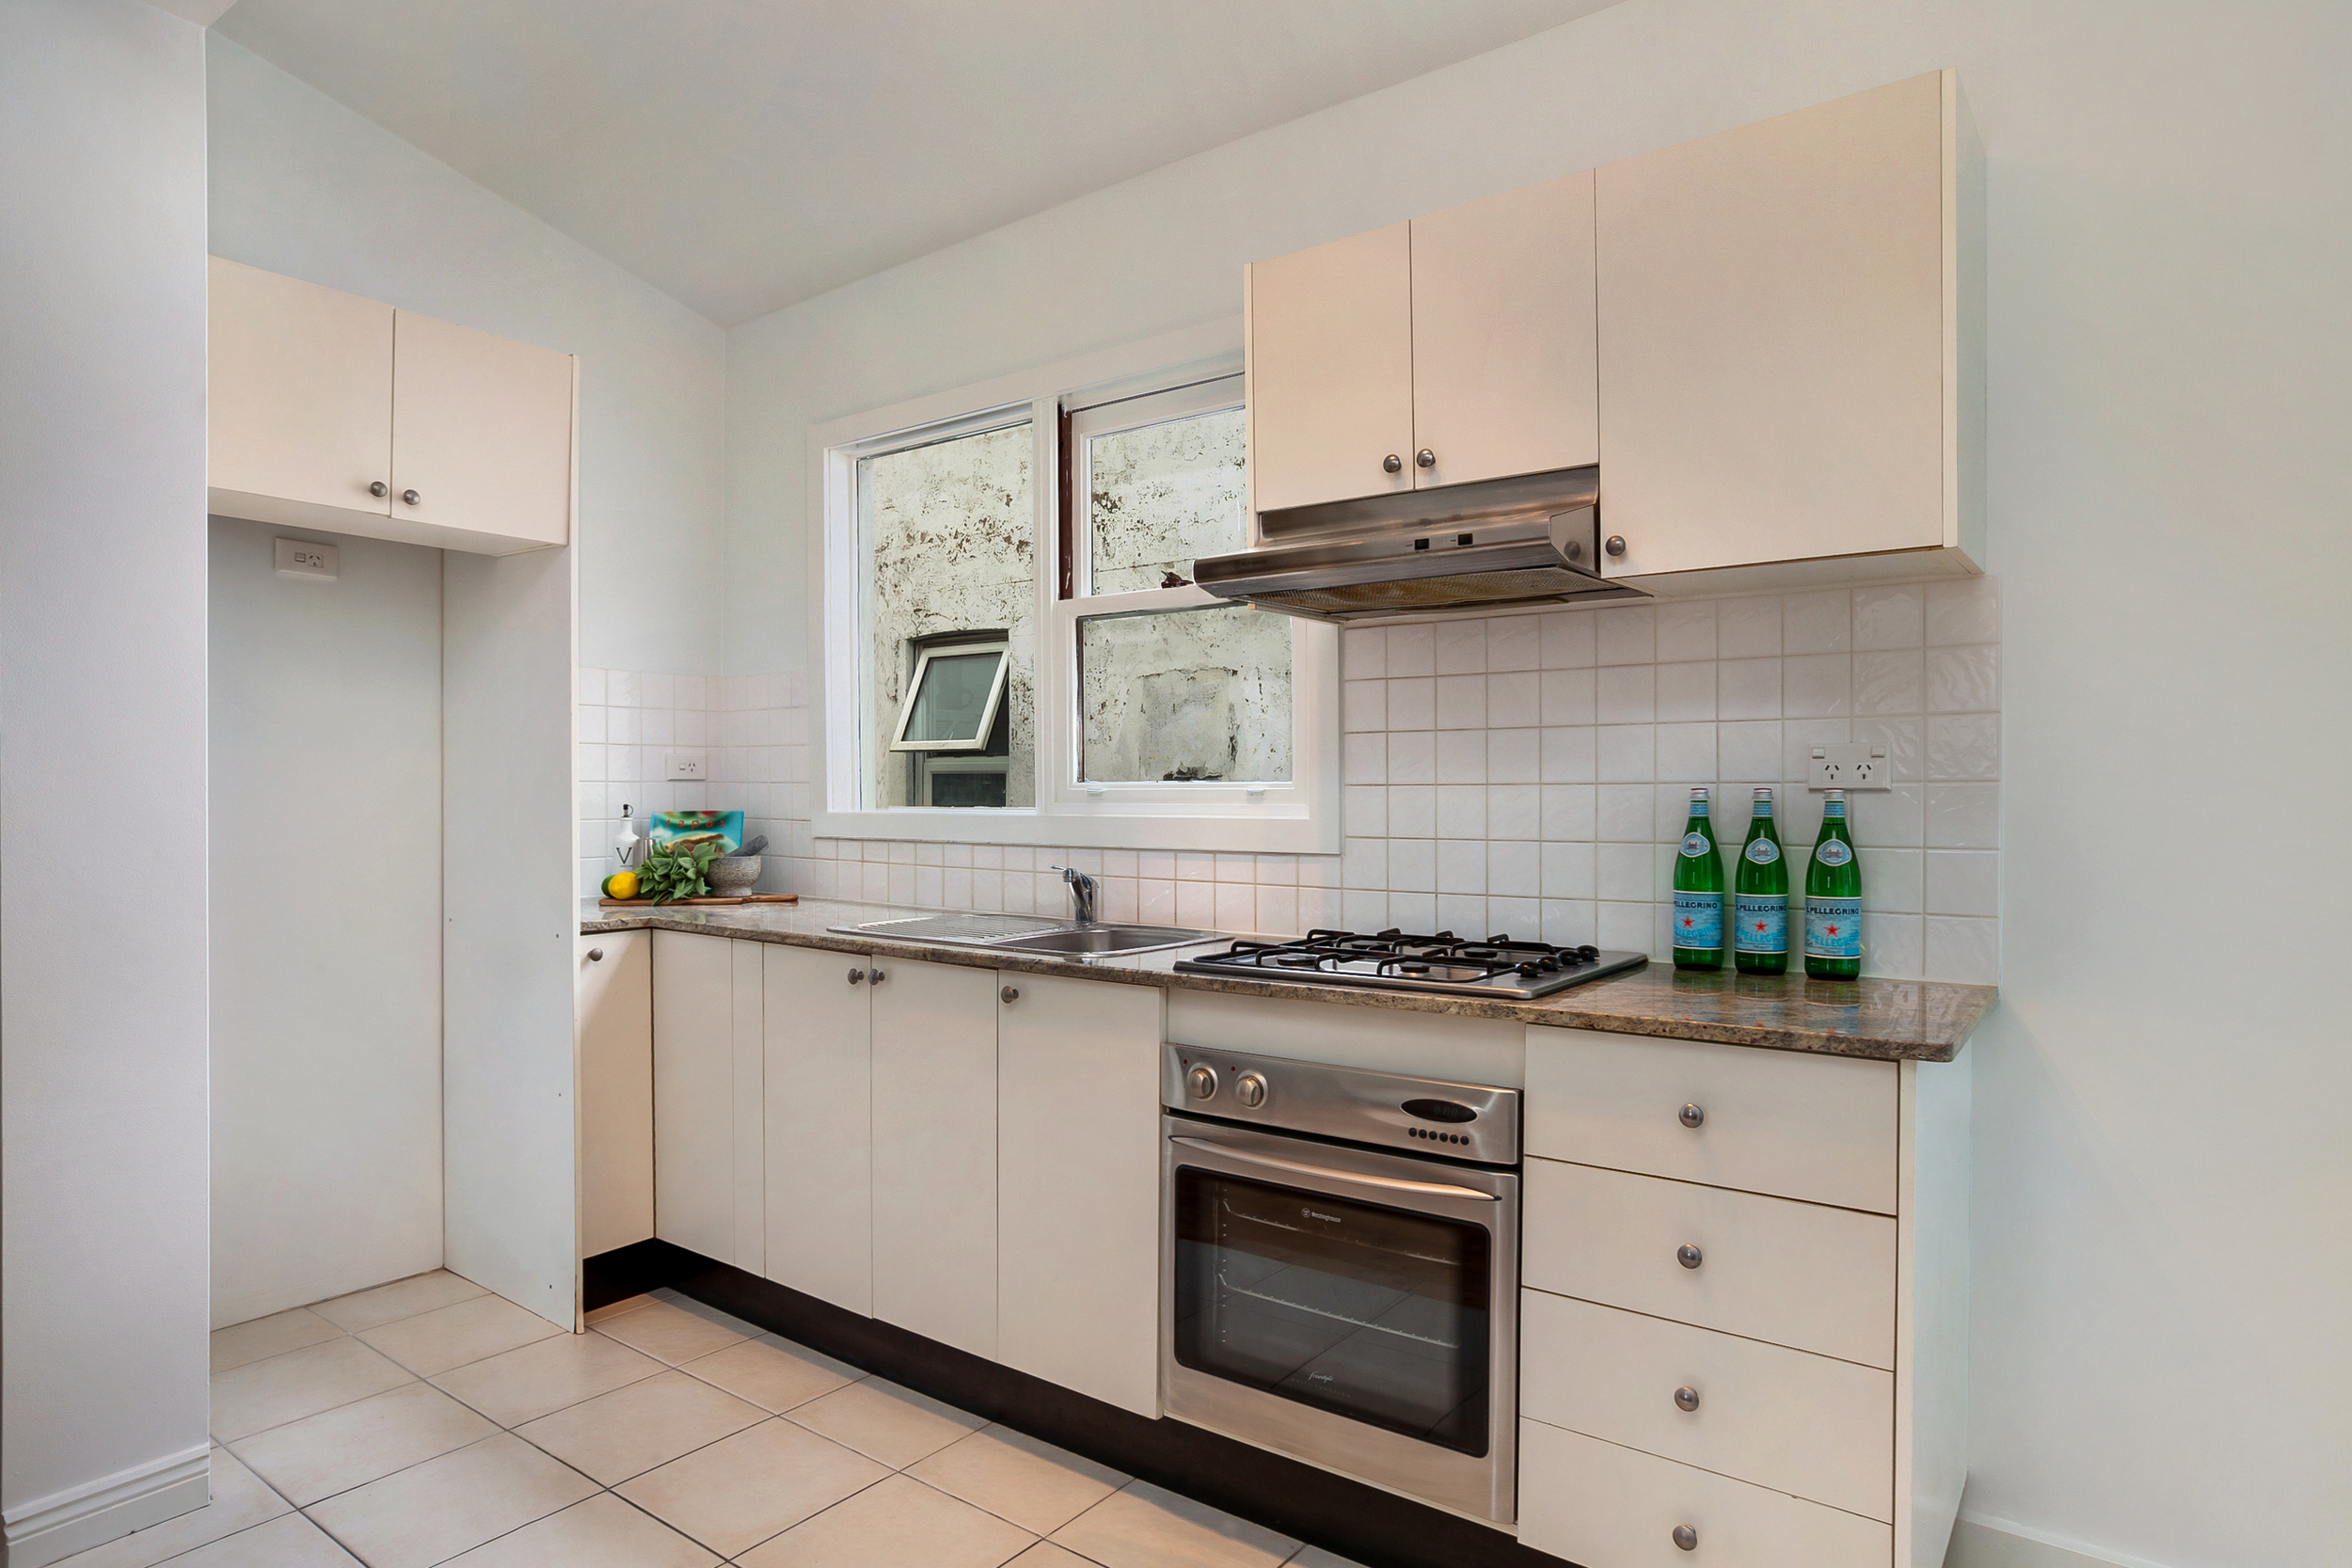 Middleton-St-3-24-Petersham-Kitchen.jpg